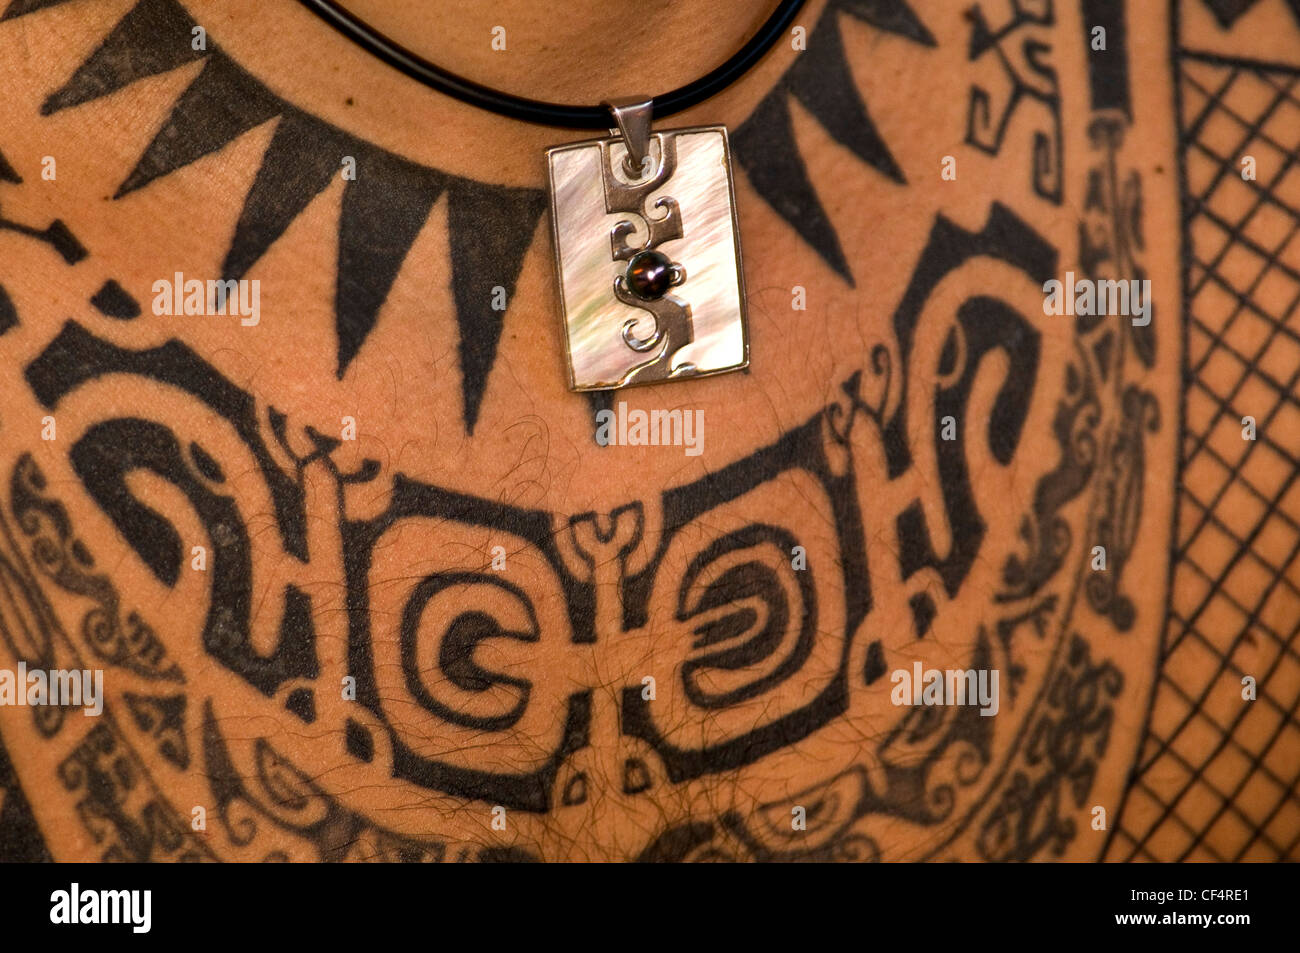 Tattooed Chest Stock Photos & Tattooed Chest Stock Images - Alamy